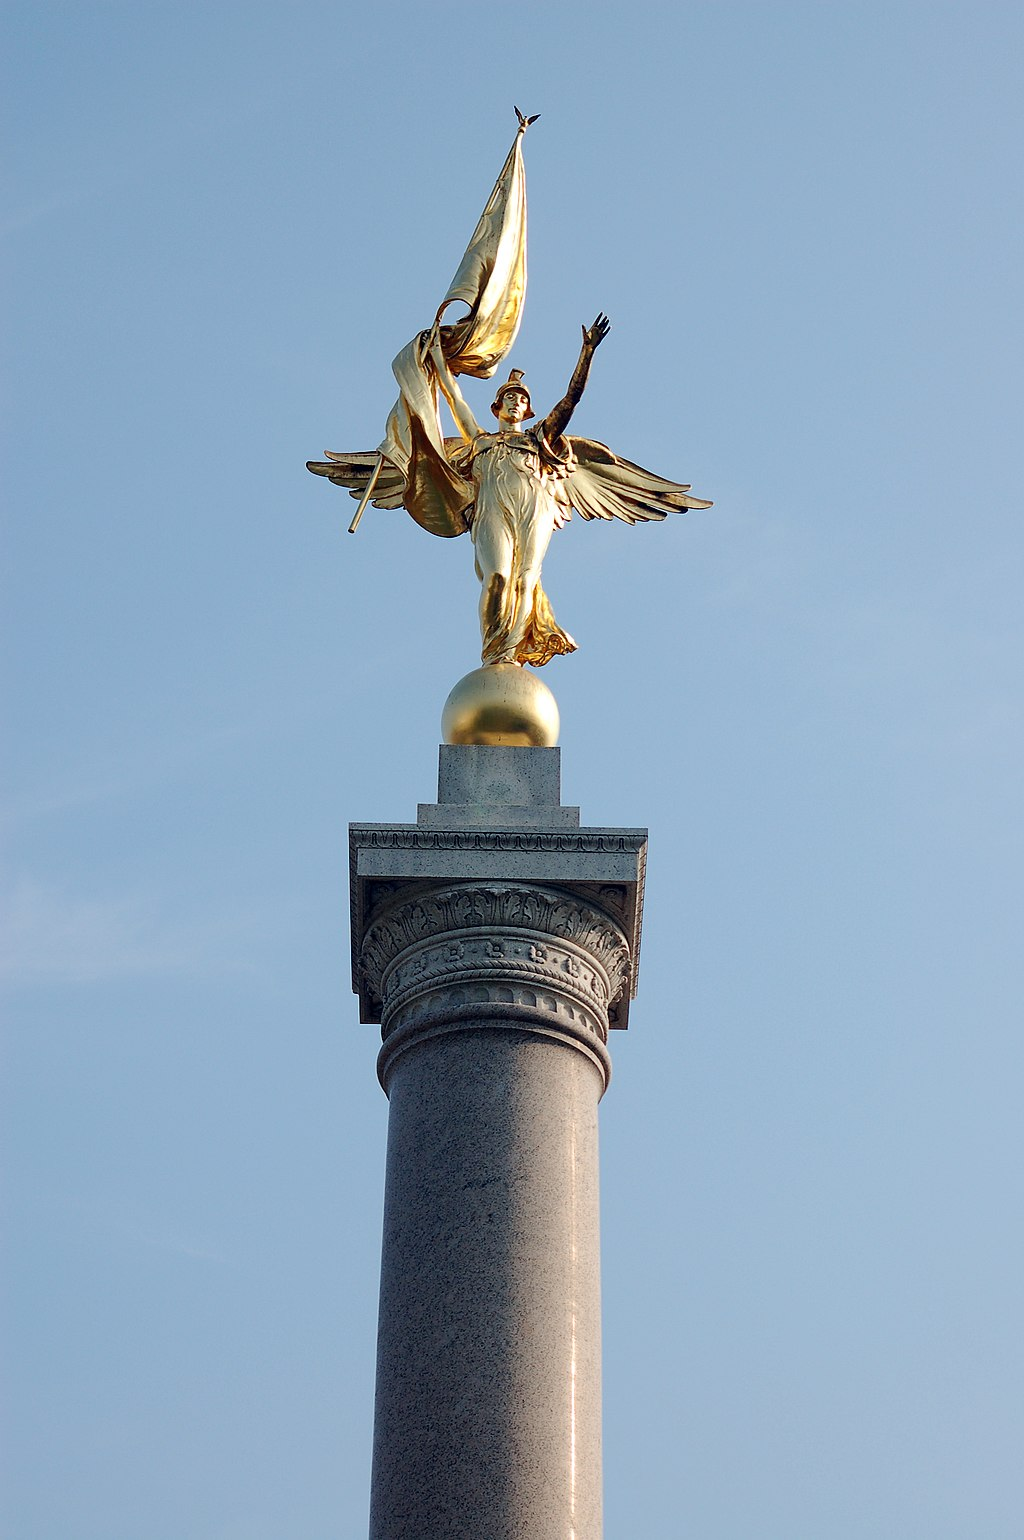 The winged statue of Victory by Daniel Chester French stands tall in President's Park. Photo by Rob Young, Wikimedia.